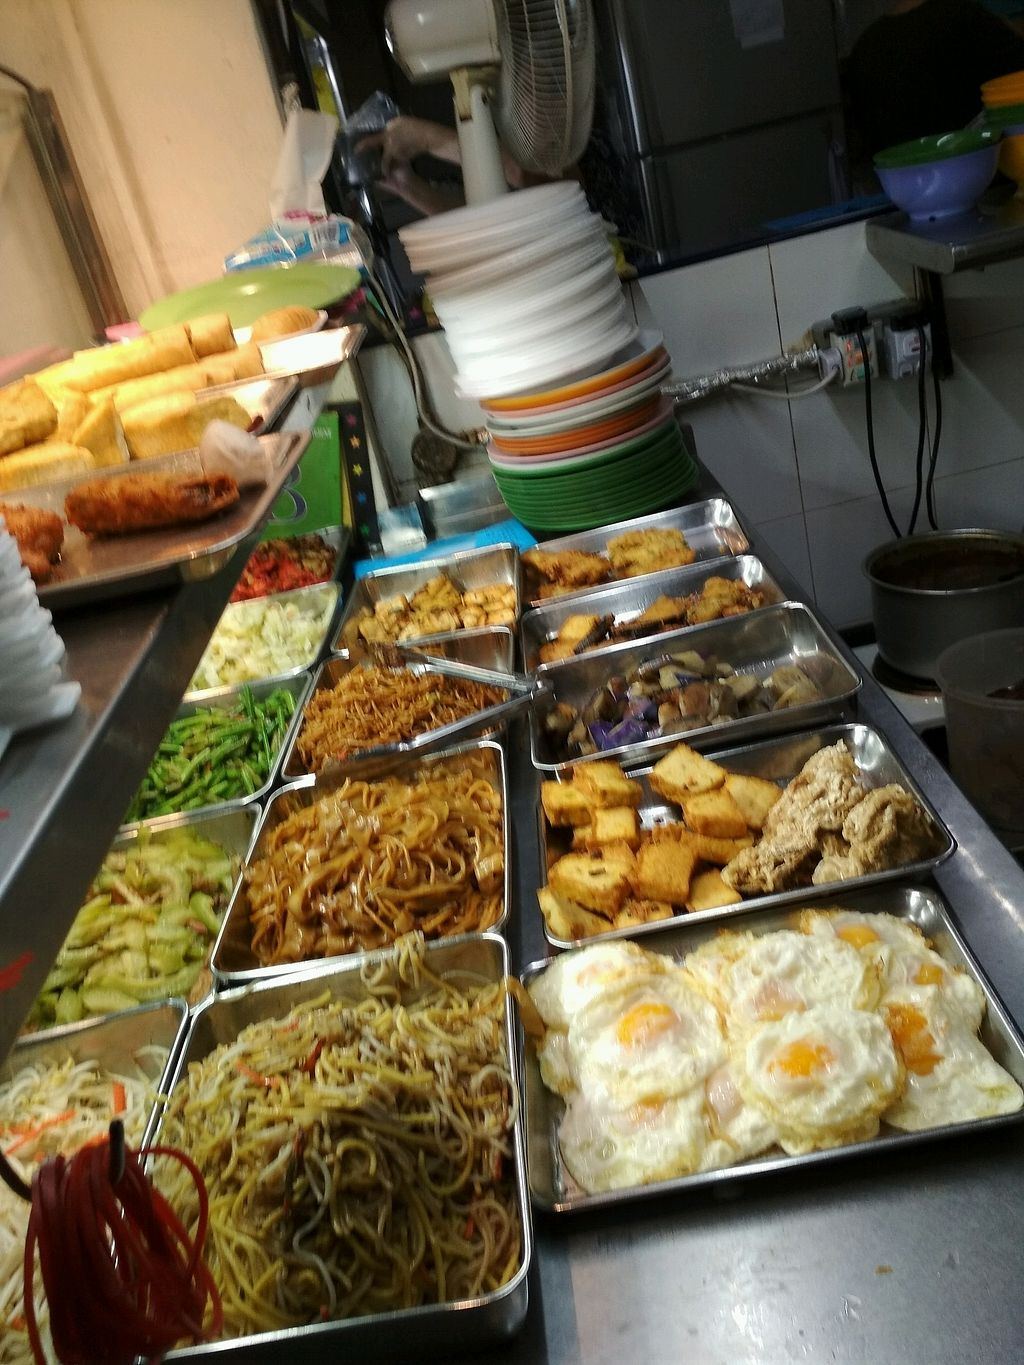 """Photo of Tian Fook Vegetarian Stall  by <a href=""""/members/profile/kwatoyo"""">kwatoyo</a> <br/>economic rice,  Bee Hoon,  noodles,  Kuay Teow <br/> January 10, 2018  - <a href='/contact/abuse/image/58064/344850'>Report</a>"""